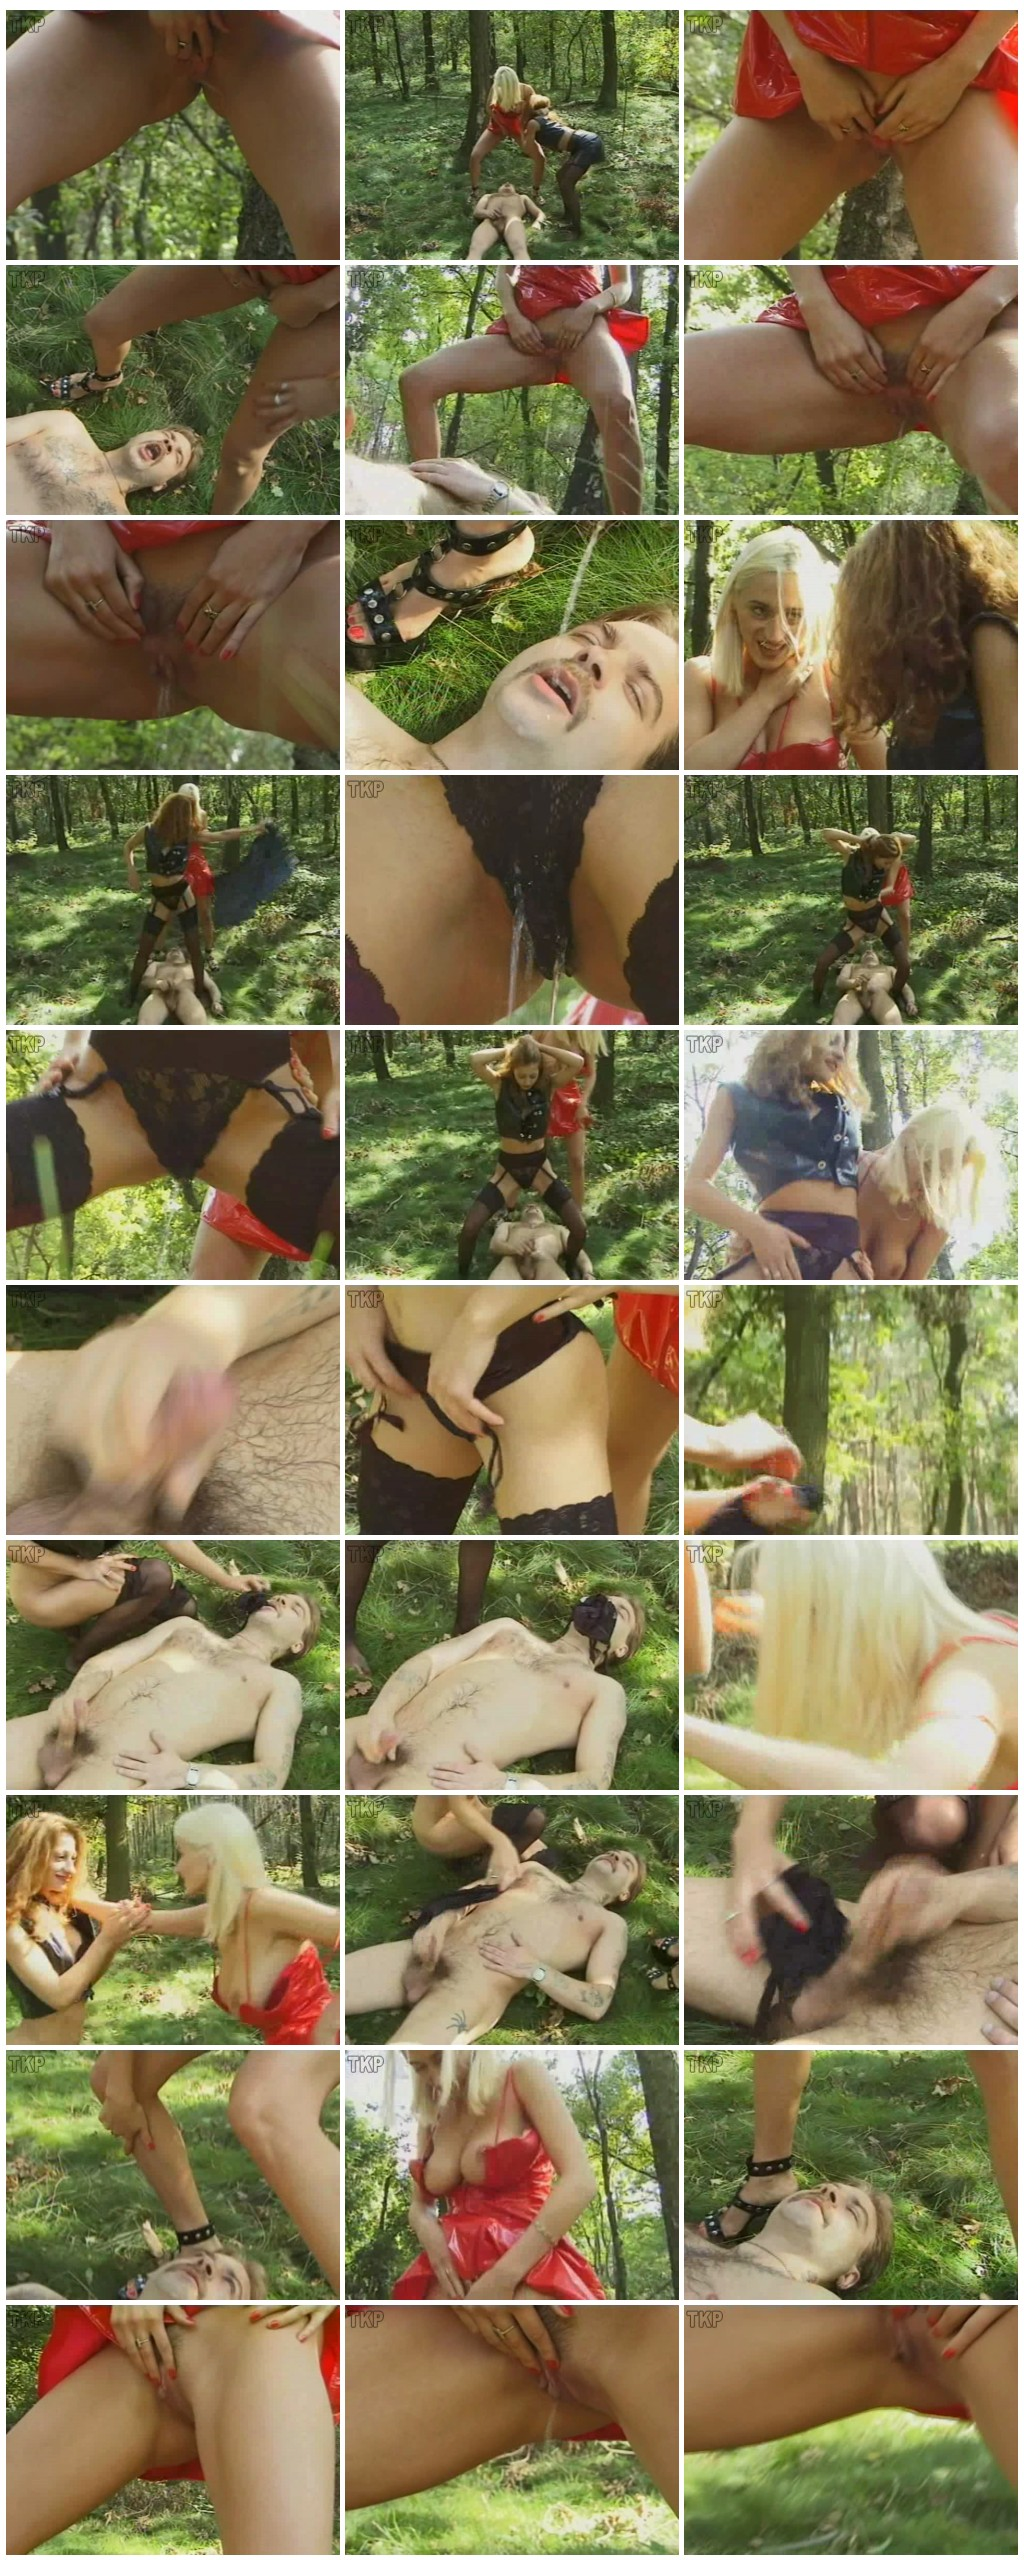 Two Girls Piss A Man In The Wood Scat pissing Femdom Toilet Slavery HandjobDrink pee thumb - Two Girls Piss A Man In The Wood [Scat, pissing,Toilet Slavery, Handjob, Drink pee]